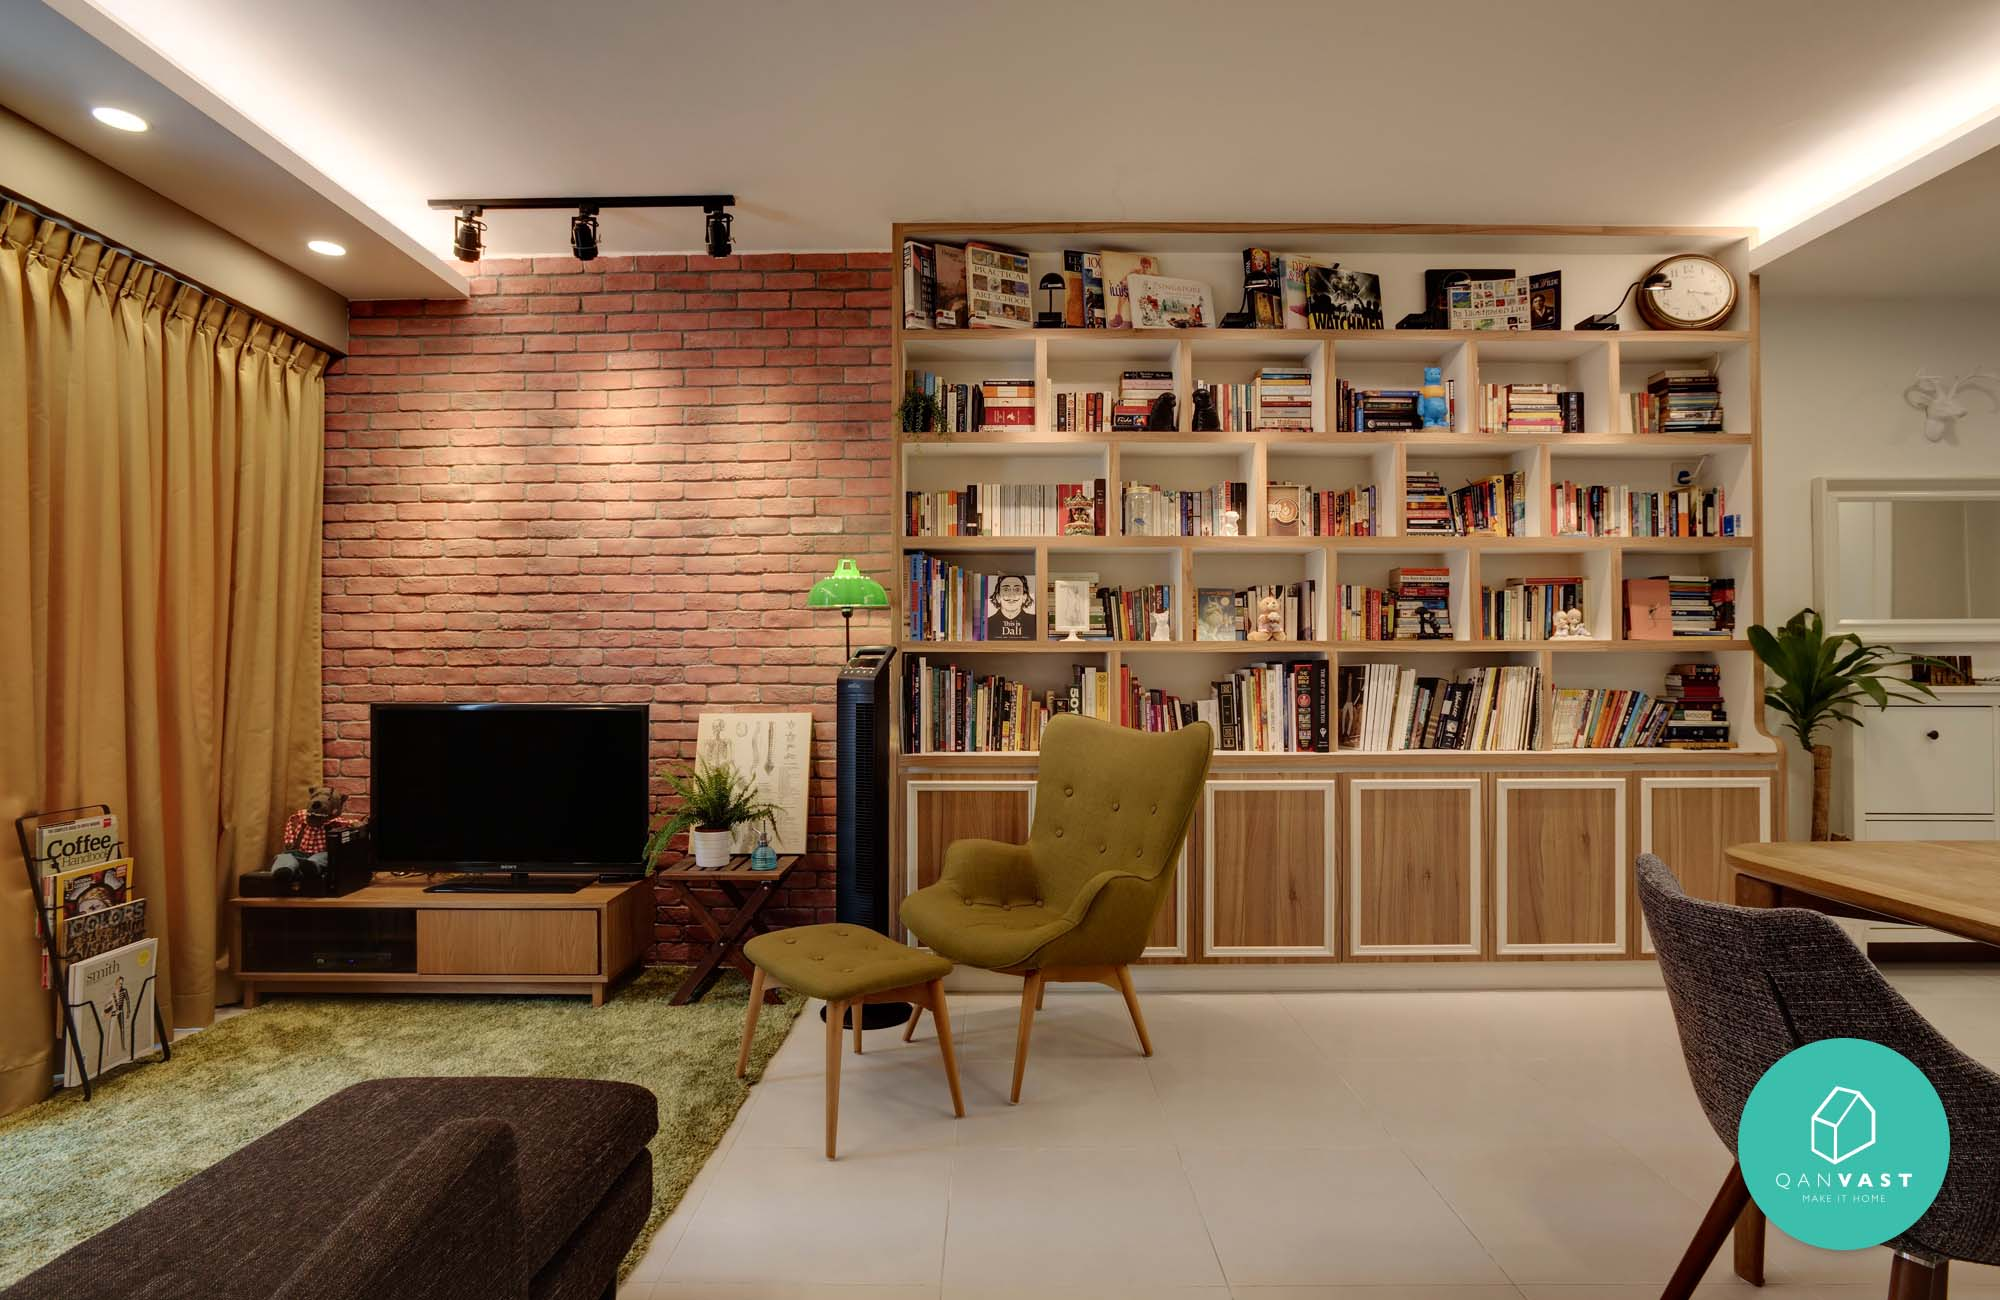 Hdb Brick Wall Design : Most voted hdb condo homes